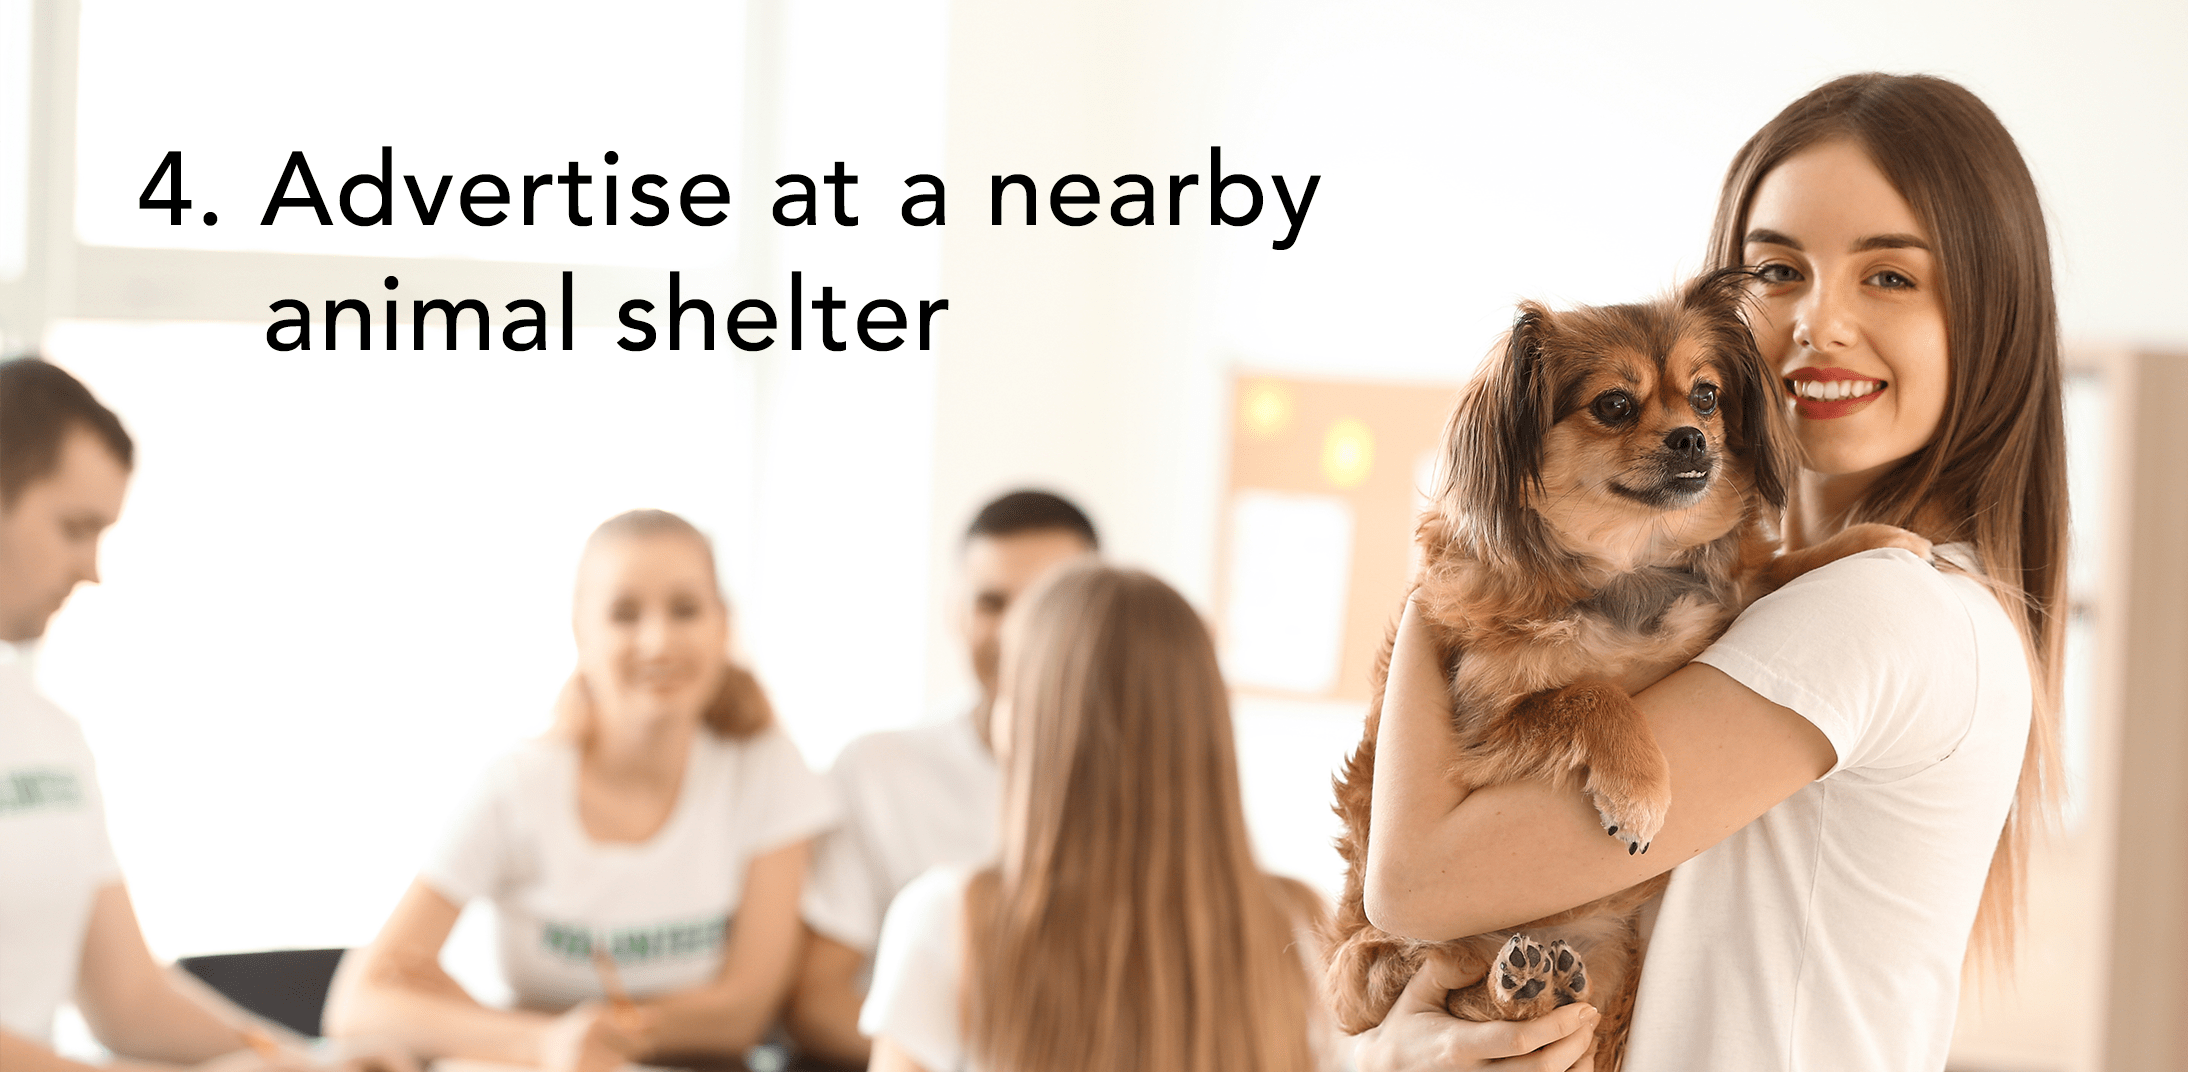 Apartment Marketing Tips - Advertise at a nearby animal shelter